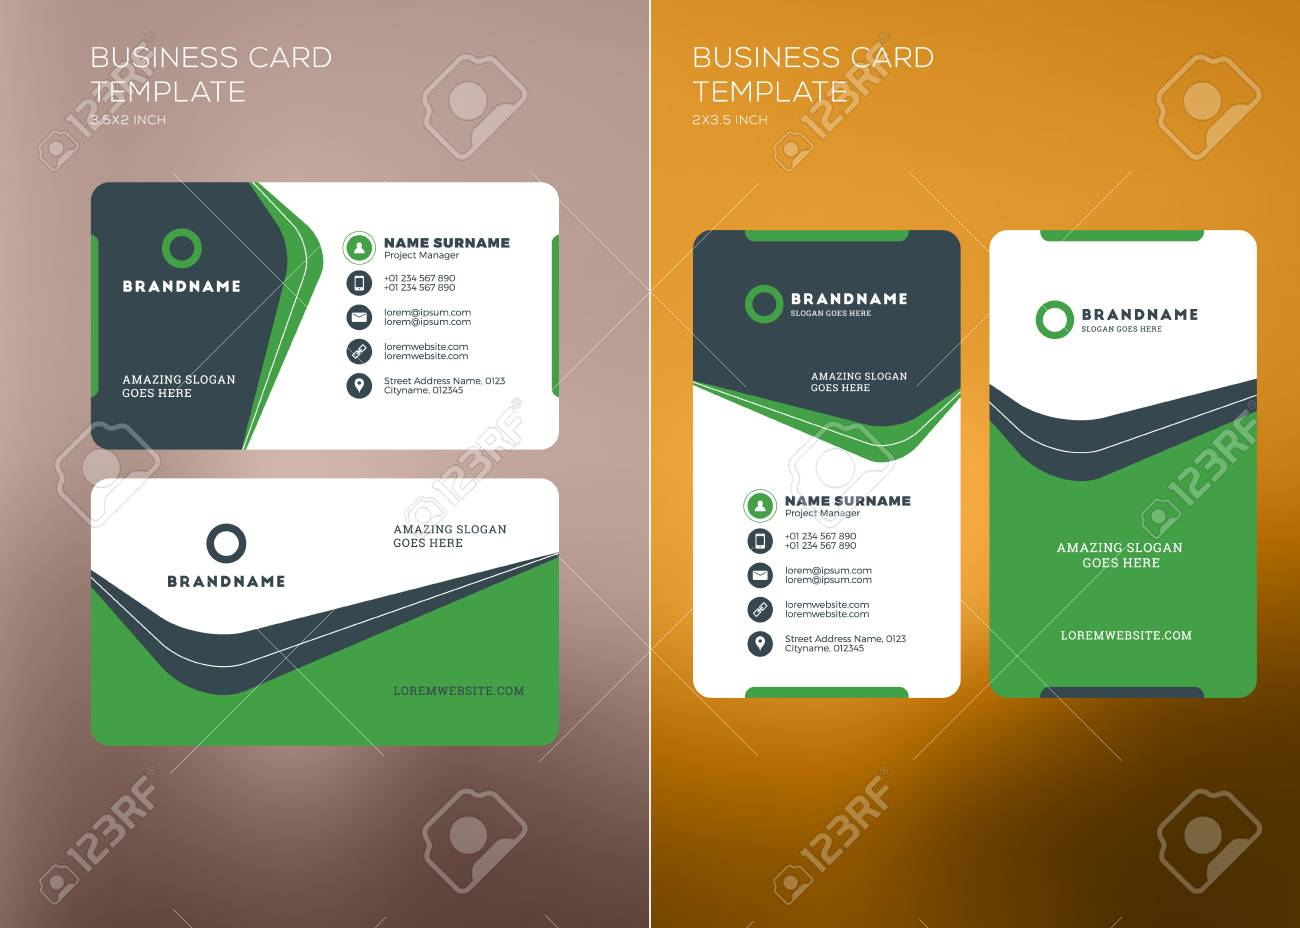 Business Cards Plattsburgh Ny Gallery - Card Design And Card Template